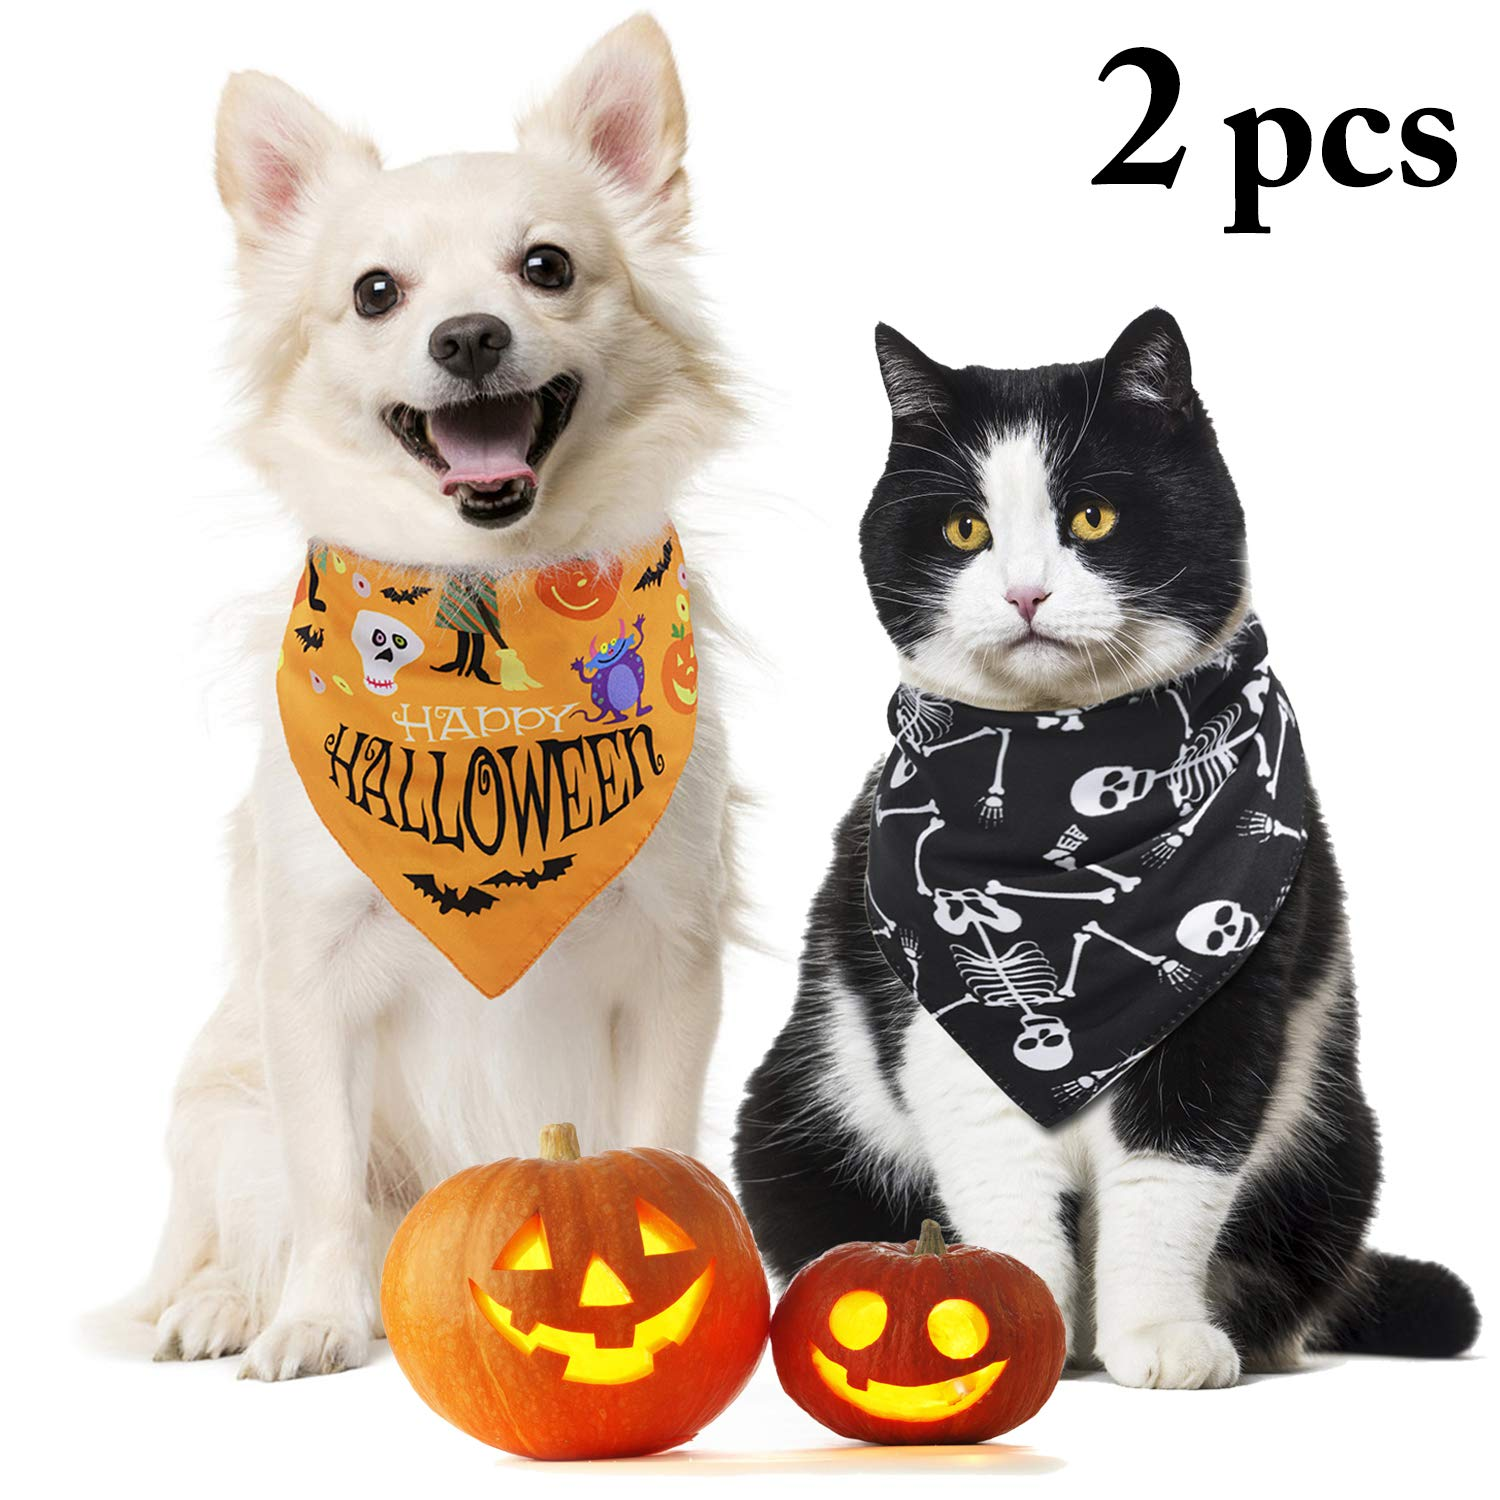 Legendog 2PCS Halloween Dog Bandana, Pet Bandana, Halloween Dog Bibs, Triangle Bandana Bib for Dogs Cats